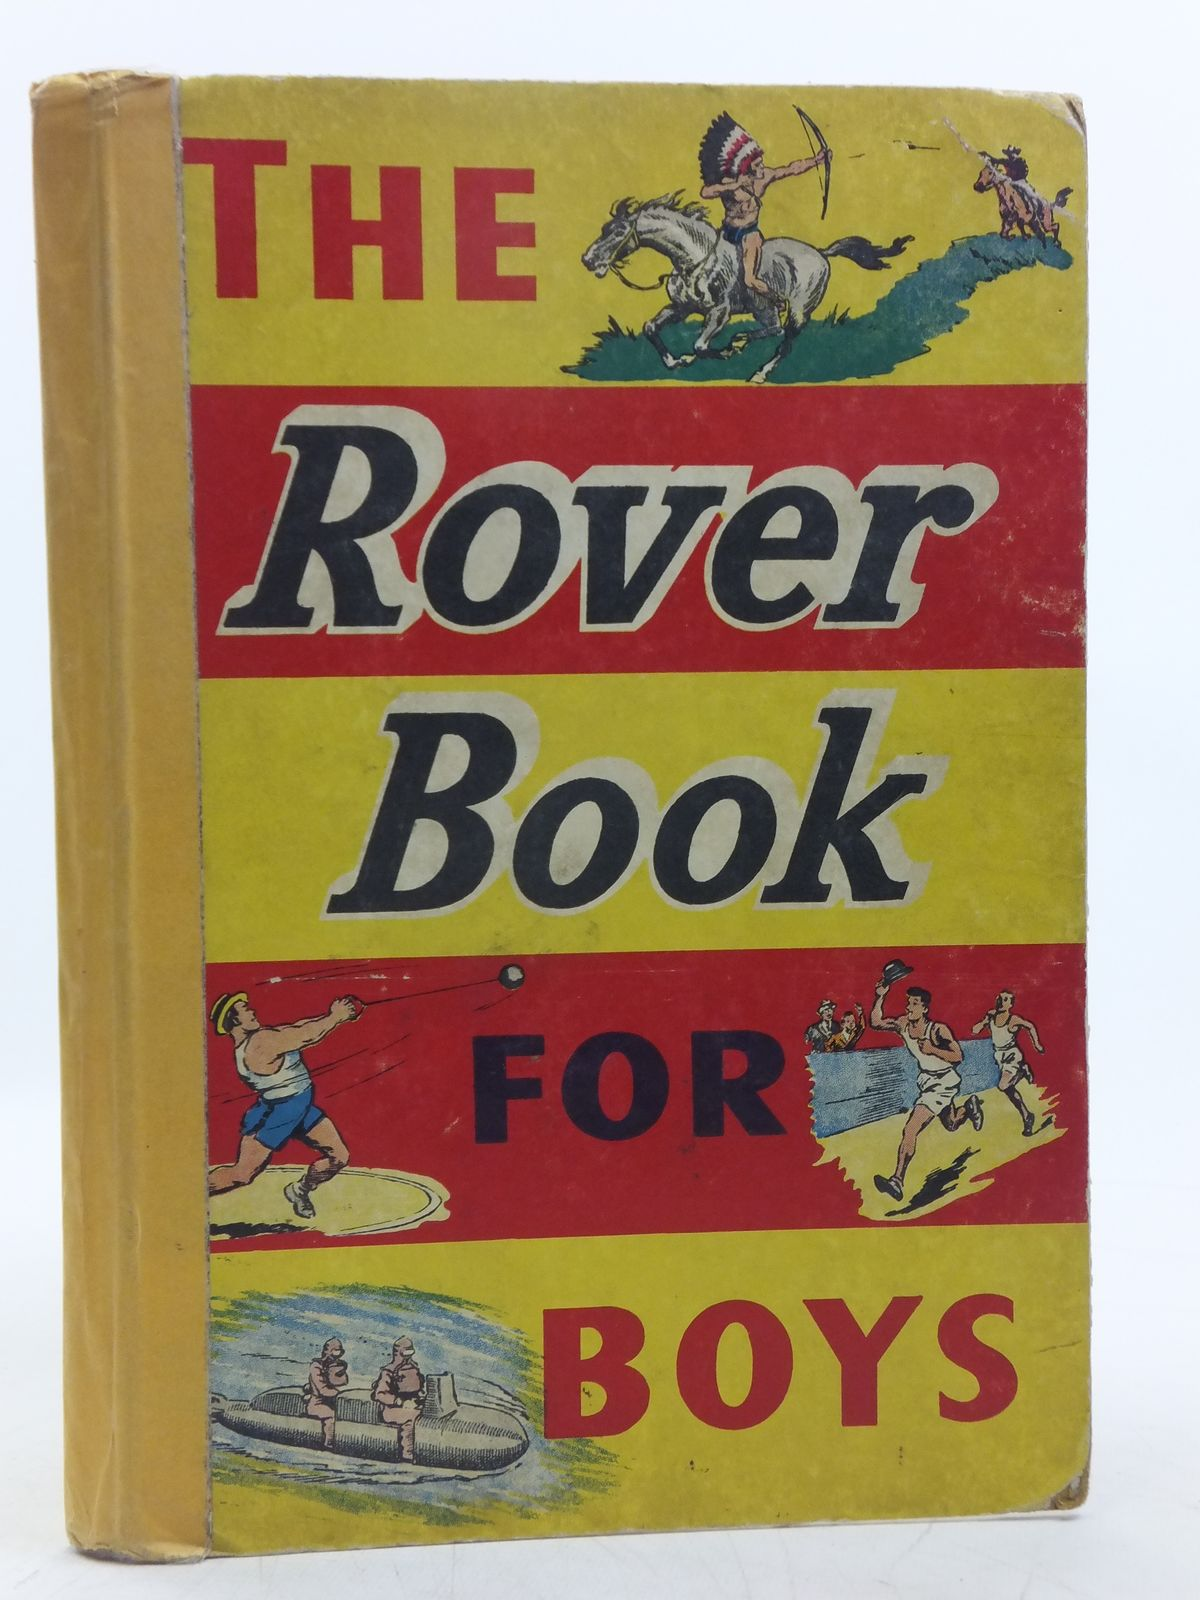 Photo of THE ROVER BOOK FOR BOYS 1958 published by D.C. Thomson & Co Ltd. (STOCK CODE: 2119469)  for sale by Stella & Rose's Books